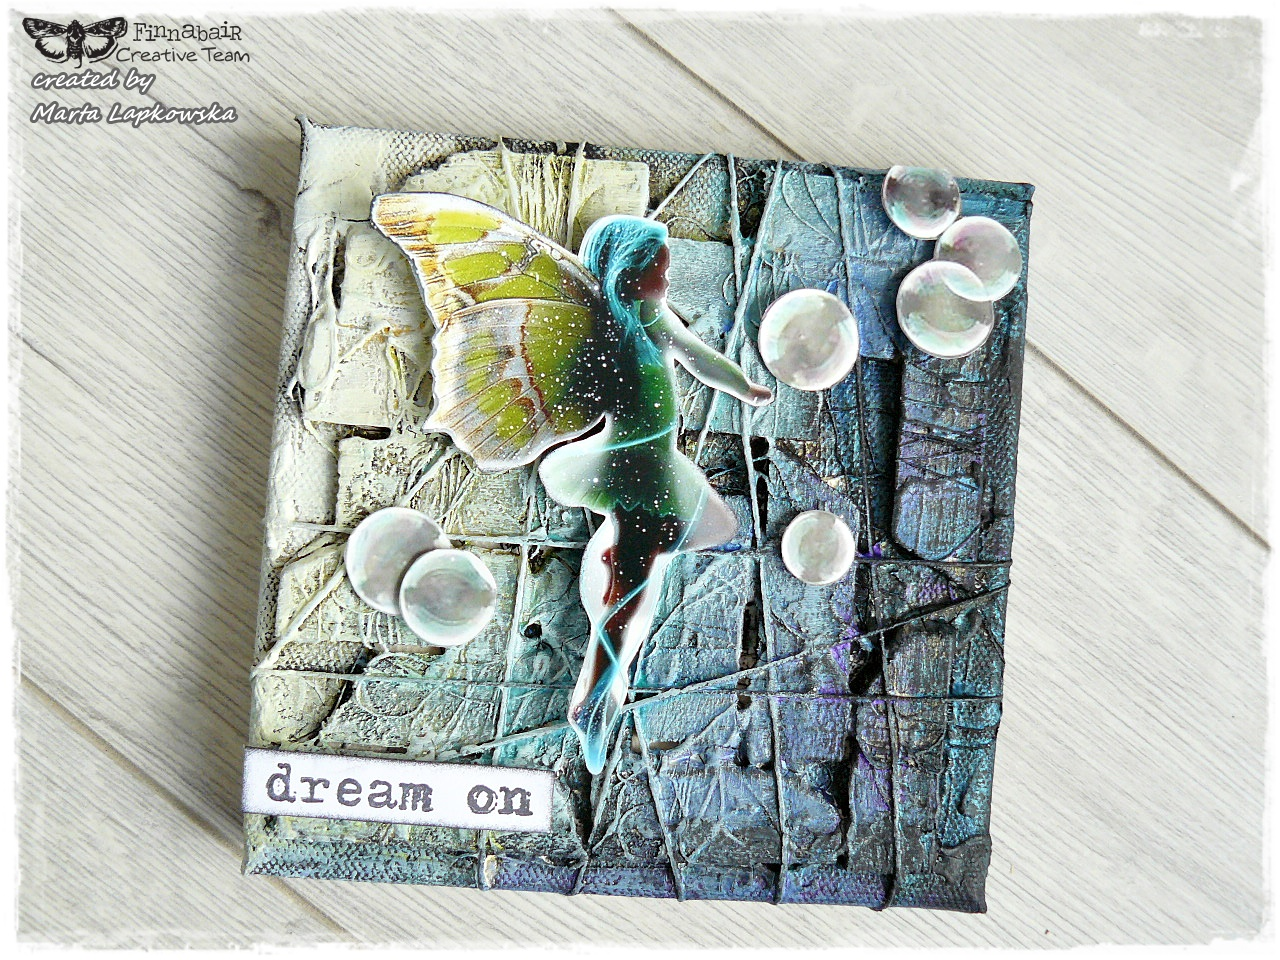 finnabair   u0026 39 dream on u0026 39  mini canvas by marta lapkowska